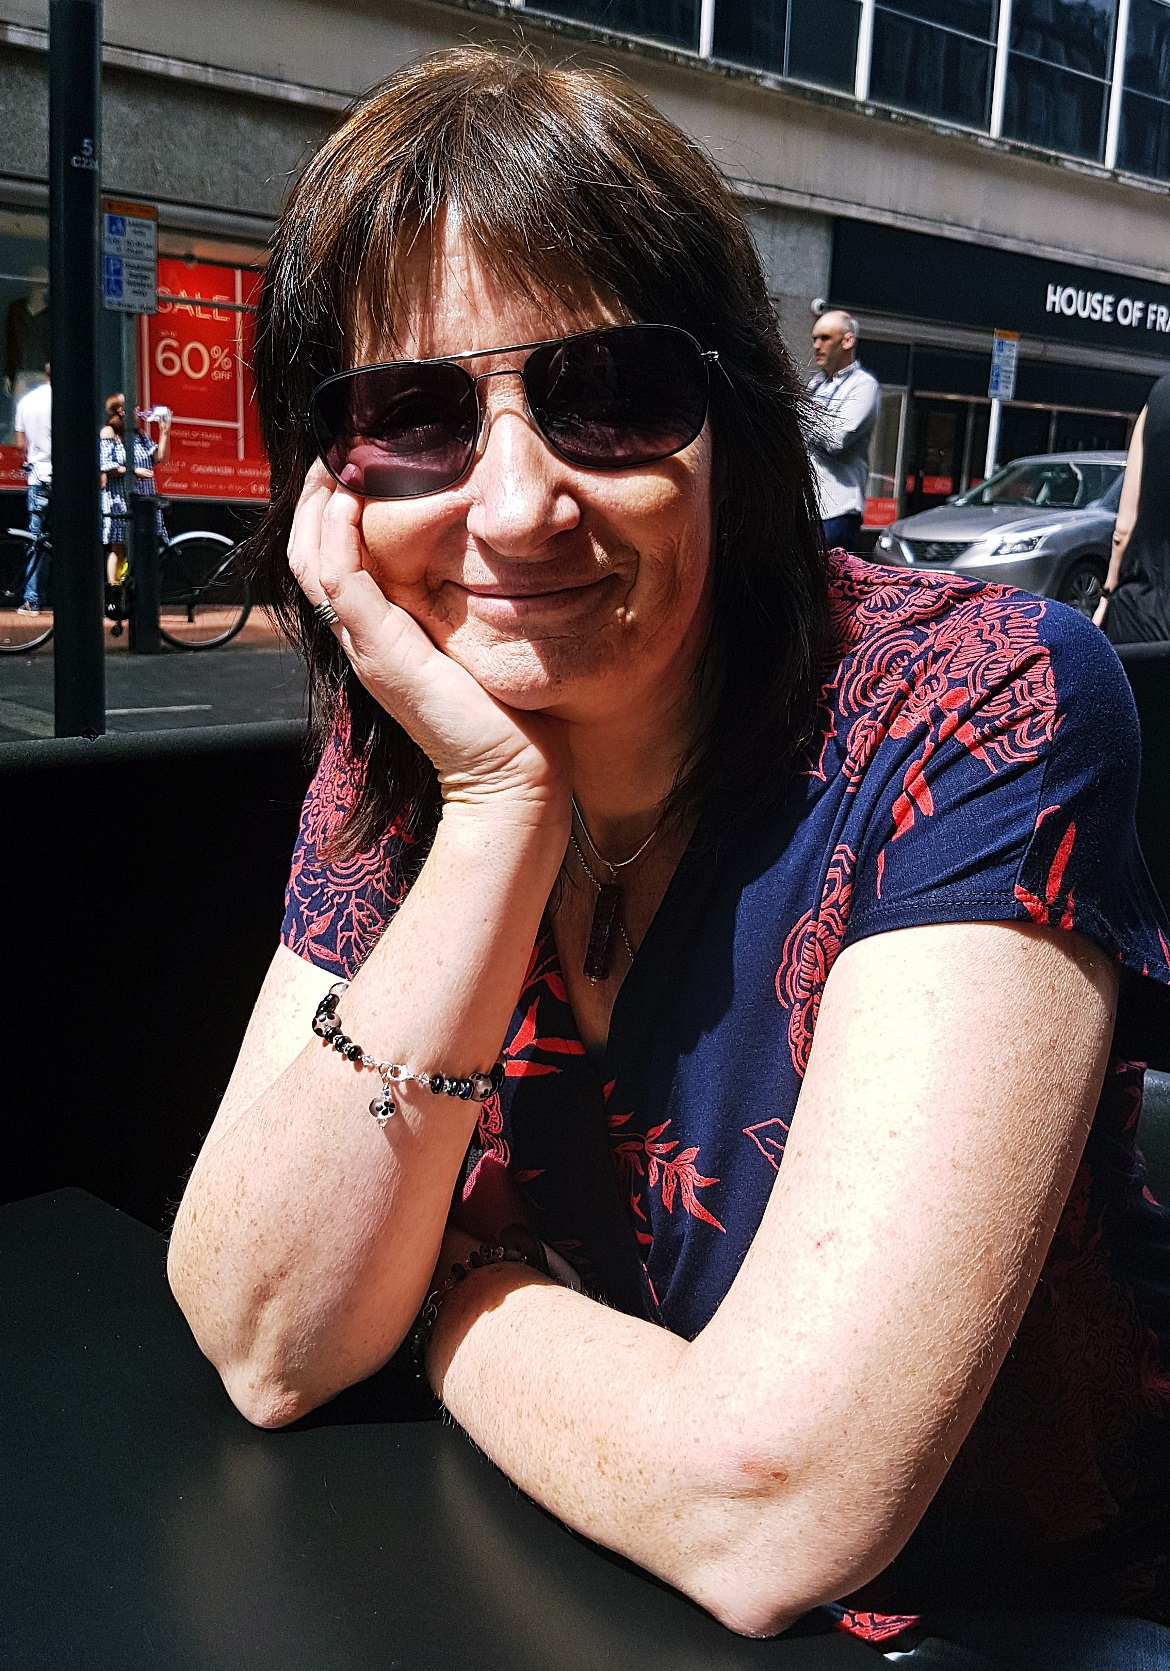 My mum visiting me in Leeds - July 2017 Recap by BeckyBecky Blogs